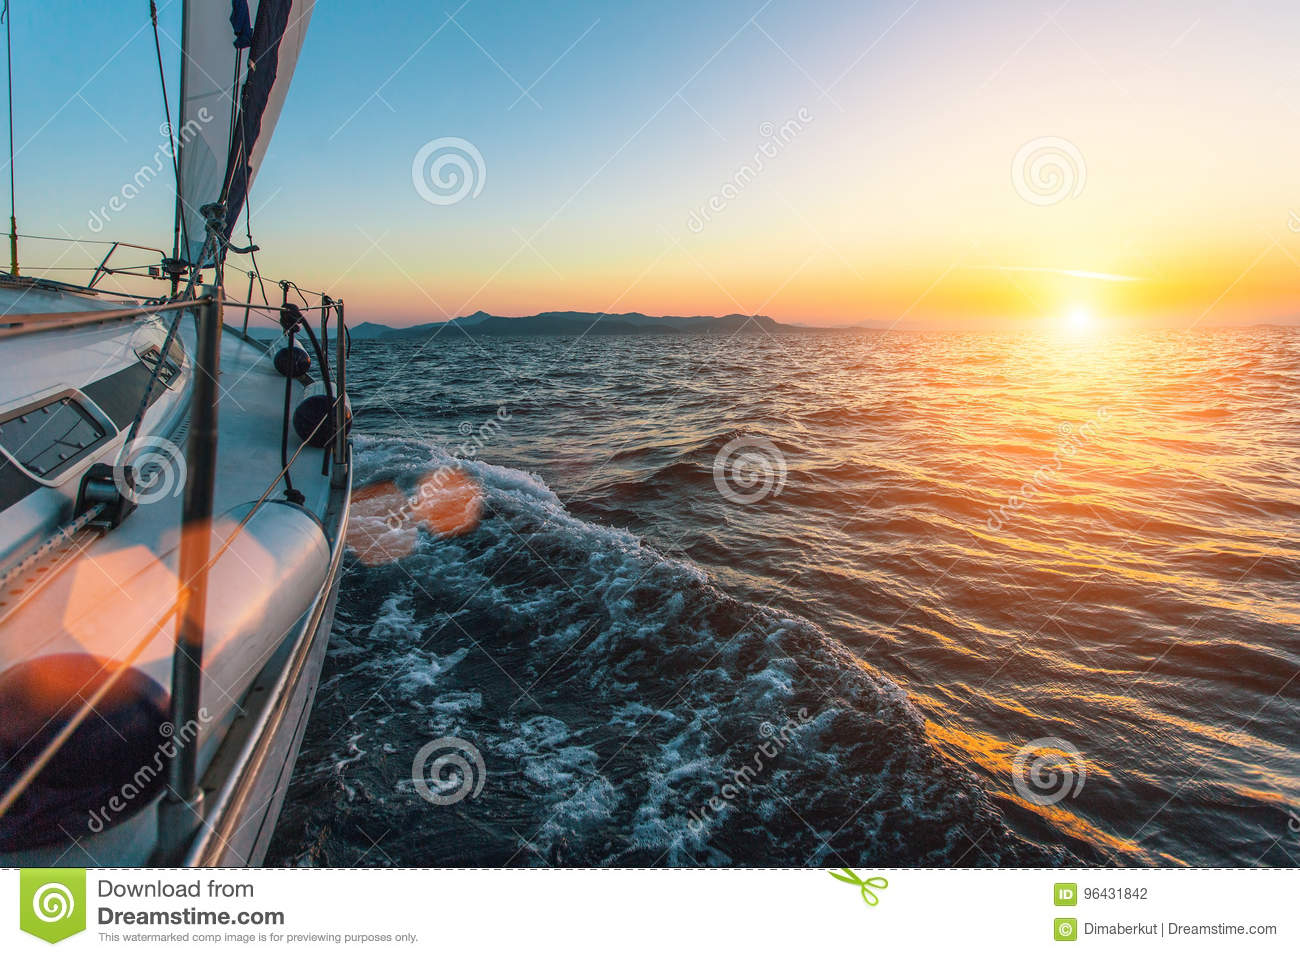 Luxury sailing ship yacht boat in the Aegean Sea during beautiful sunset. Nature.